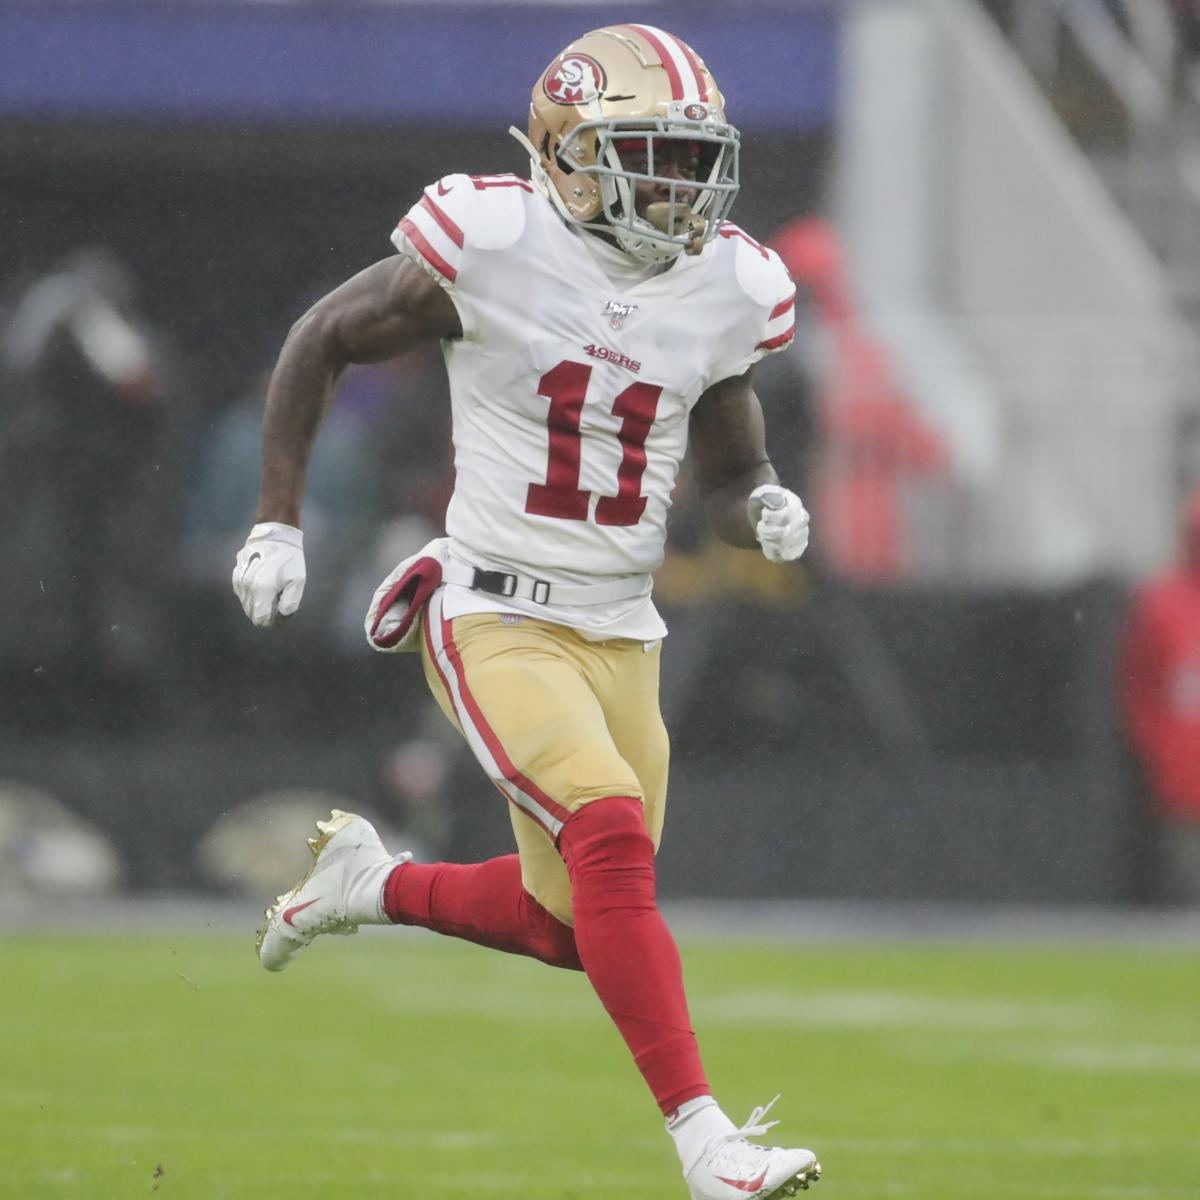 49ers Rumors: Latest Marquise Goodwin Trade Buzz, Plans at Wide Receiver